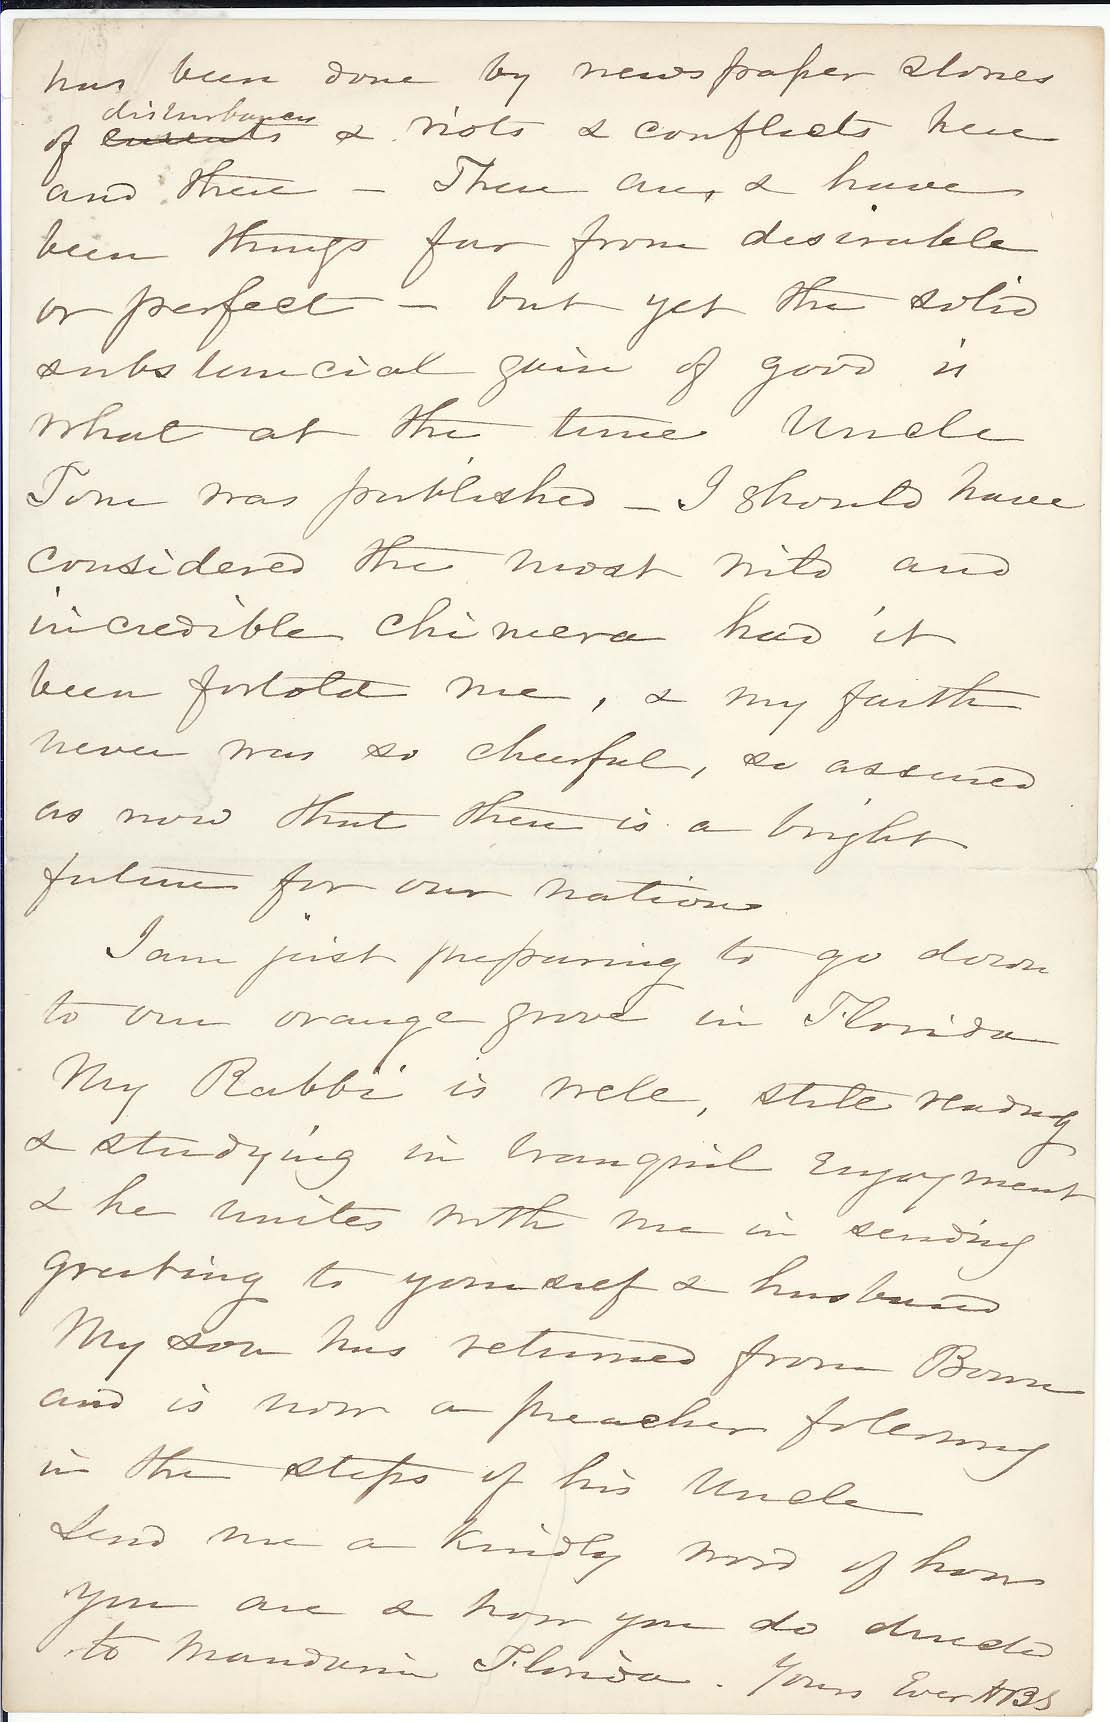 Harriet Beecher Stowe, Letter to George Eliot, 1878. Lowell Autographs, 302a, p.3